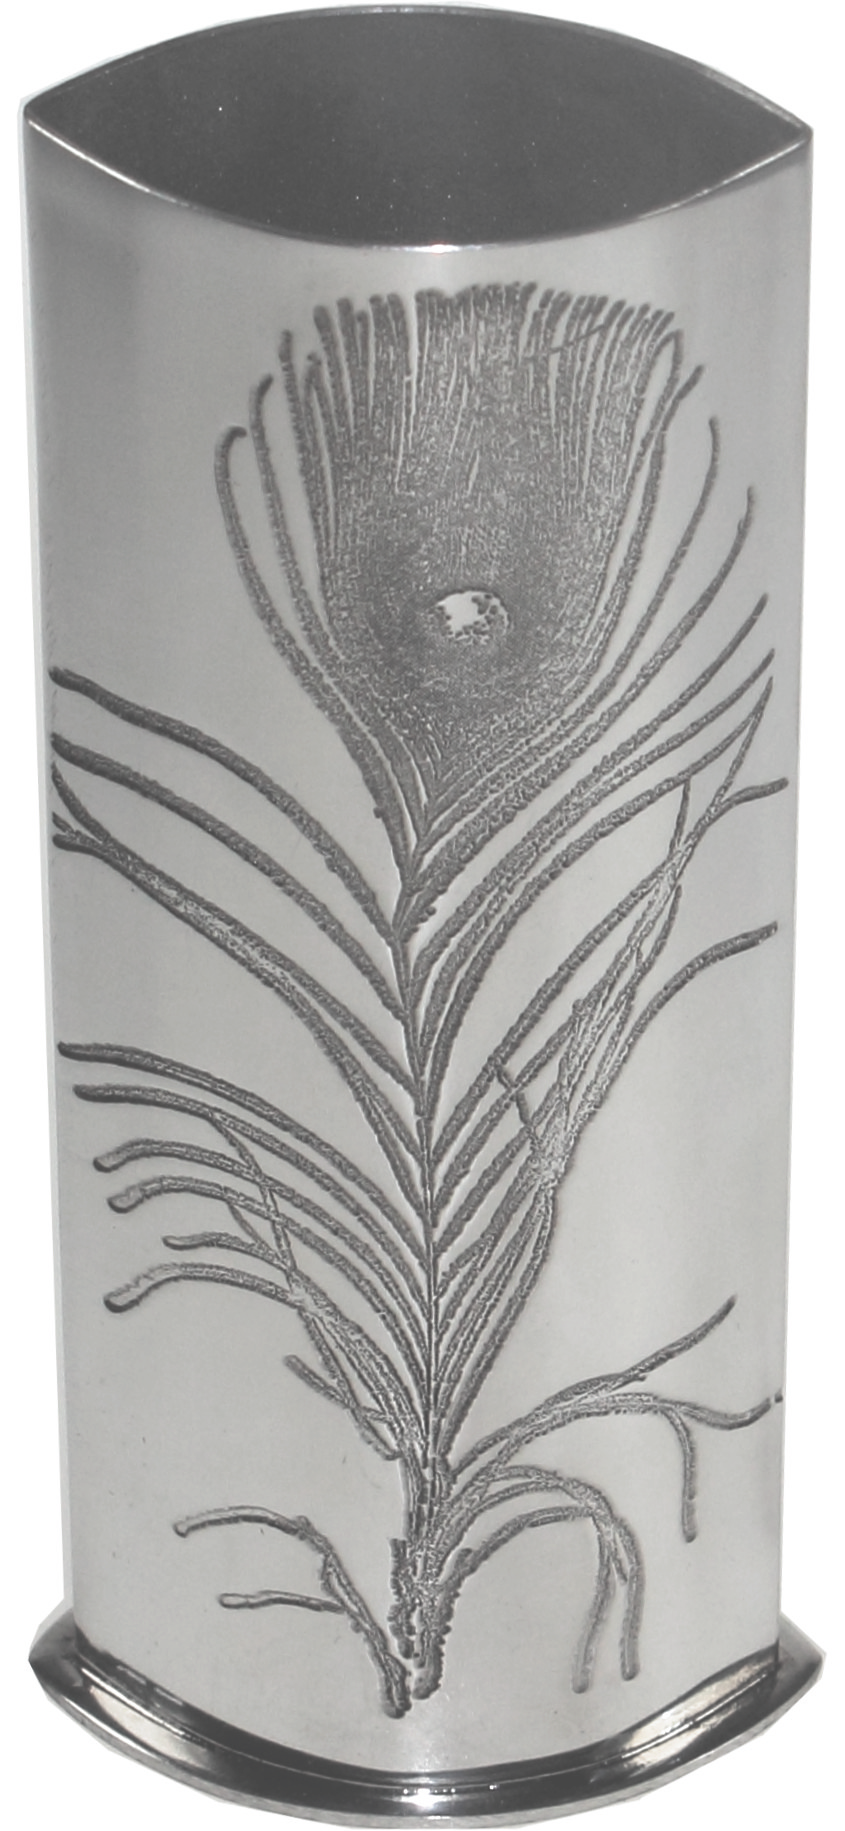 "Pewter Bud Vase with Peacock Feather Design 16cm (6.25"")"